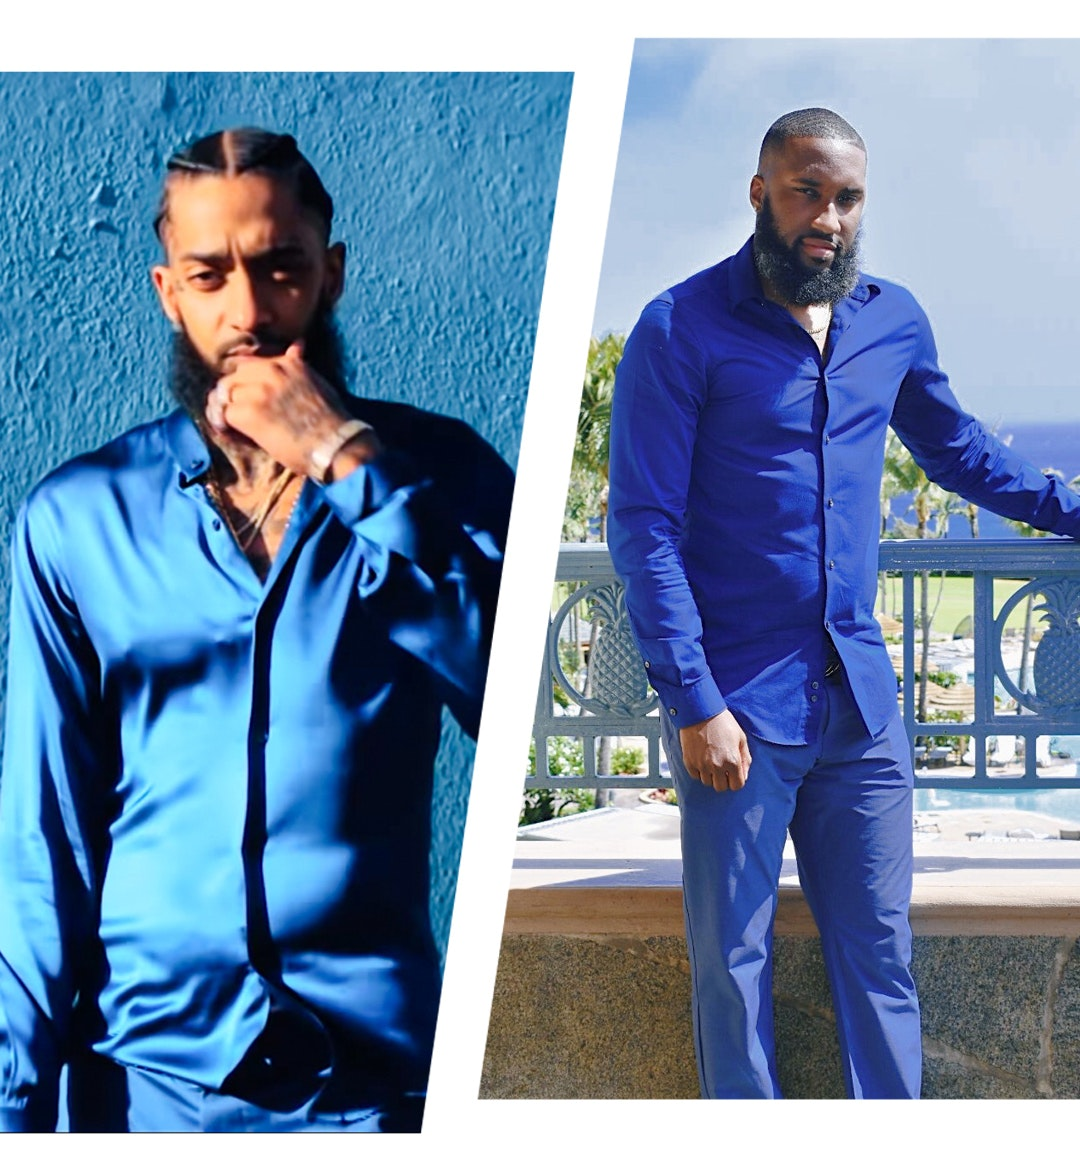 Nipsey Hussle's Blue Suit Inspired My Summer Vacation Look